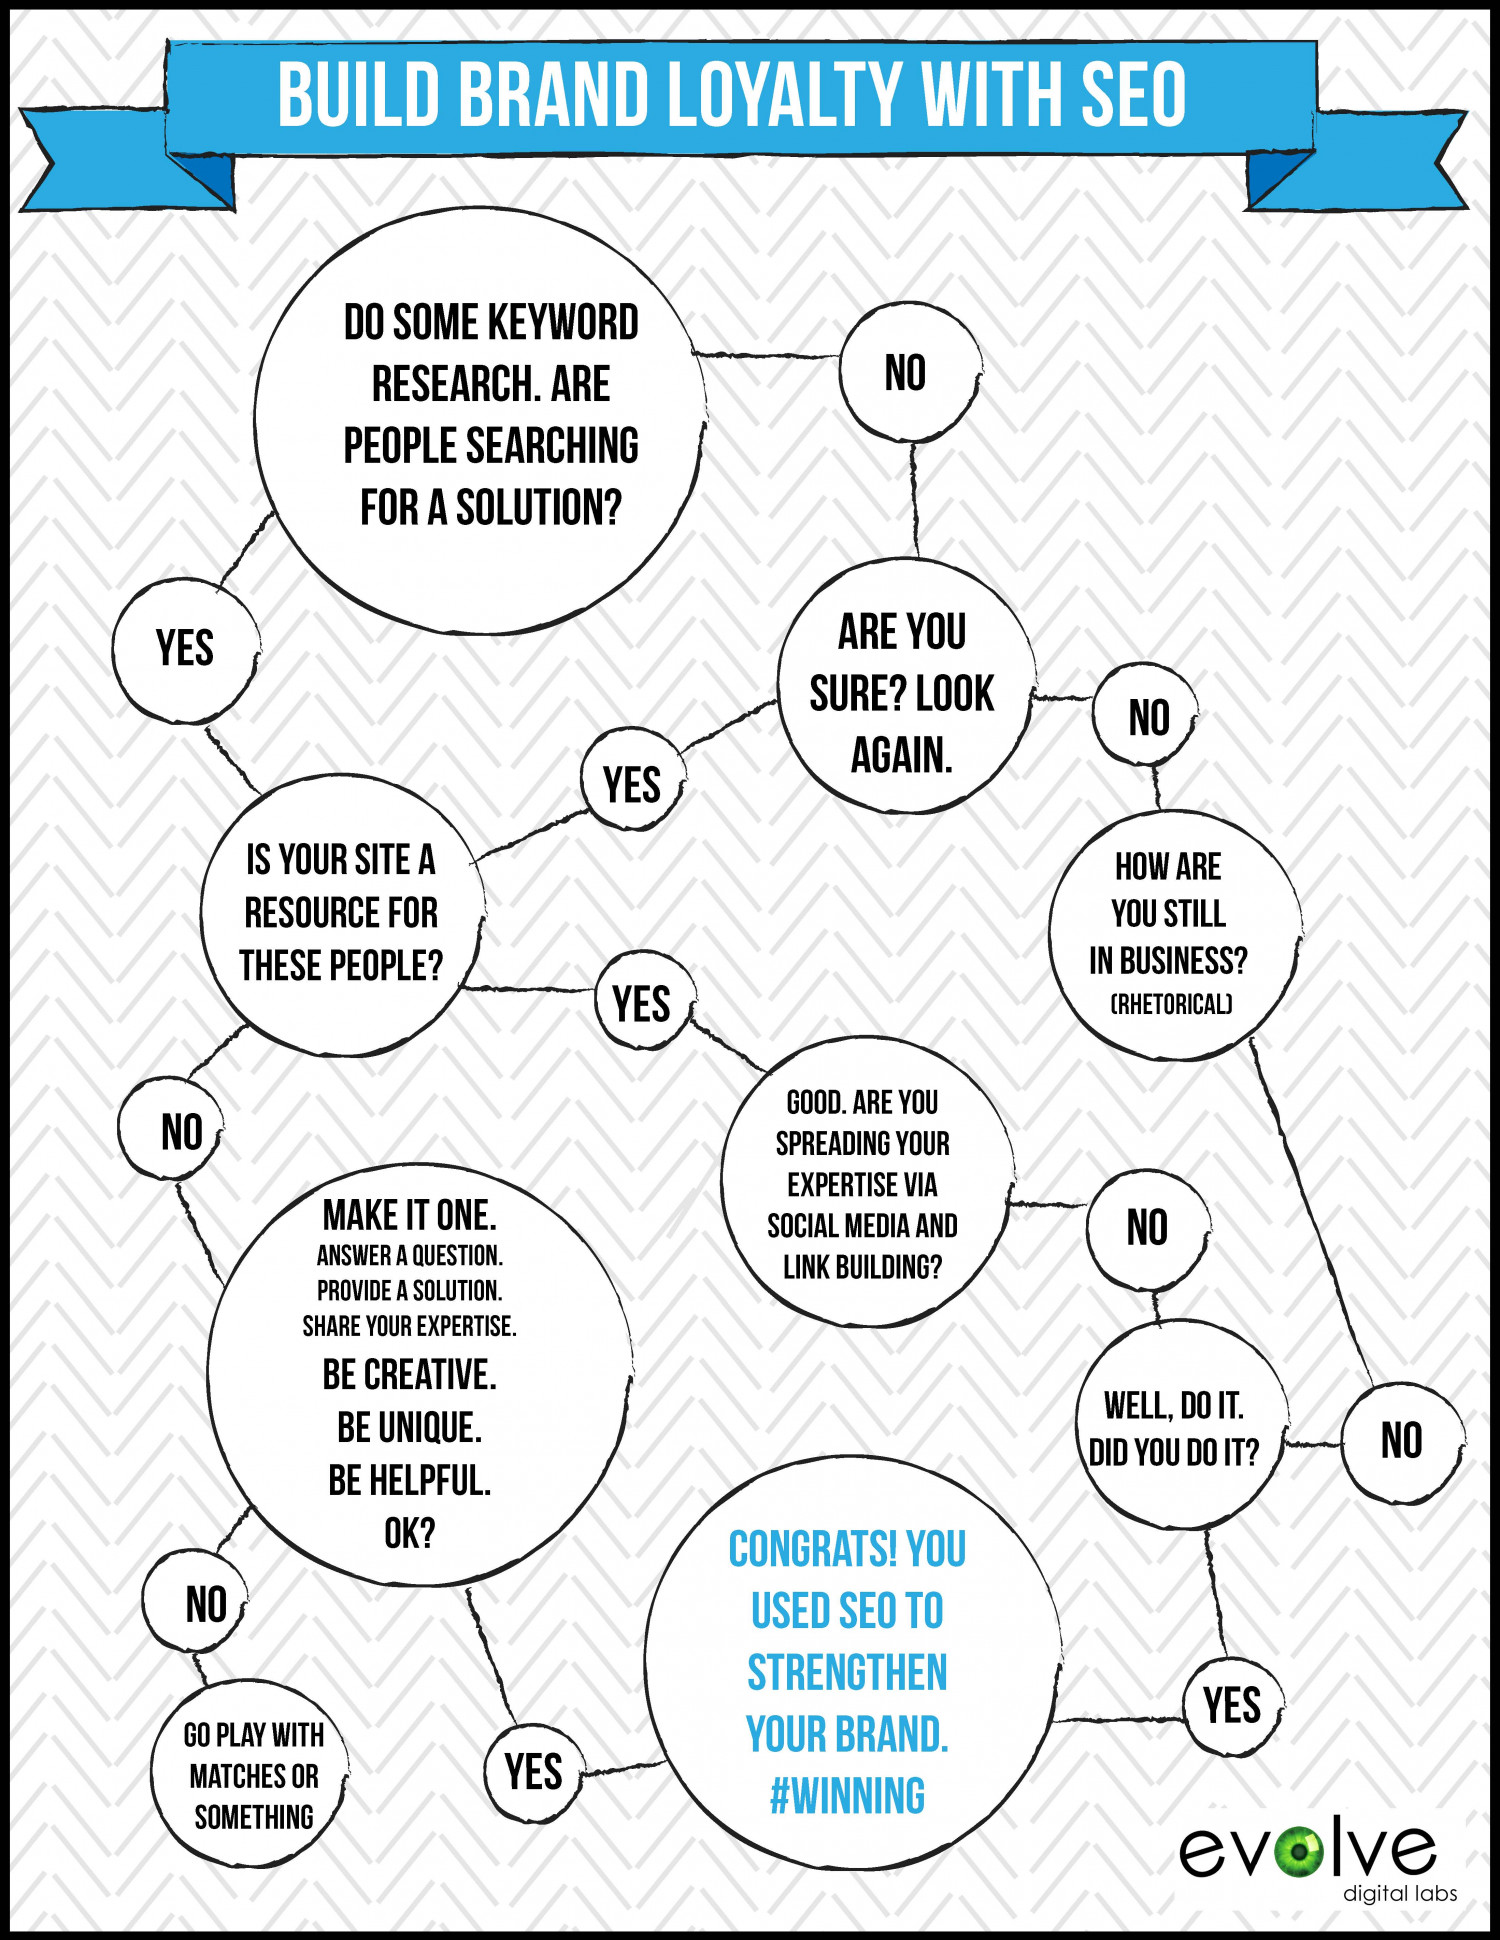 Build brand loyalty with SEO Infographic